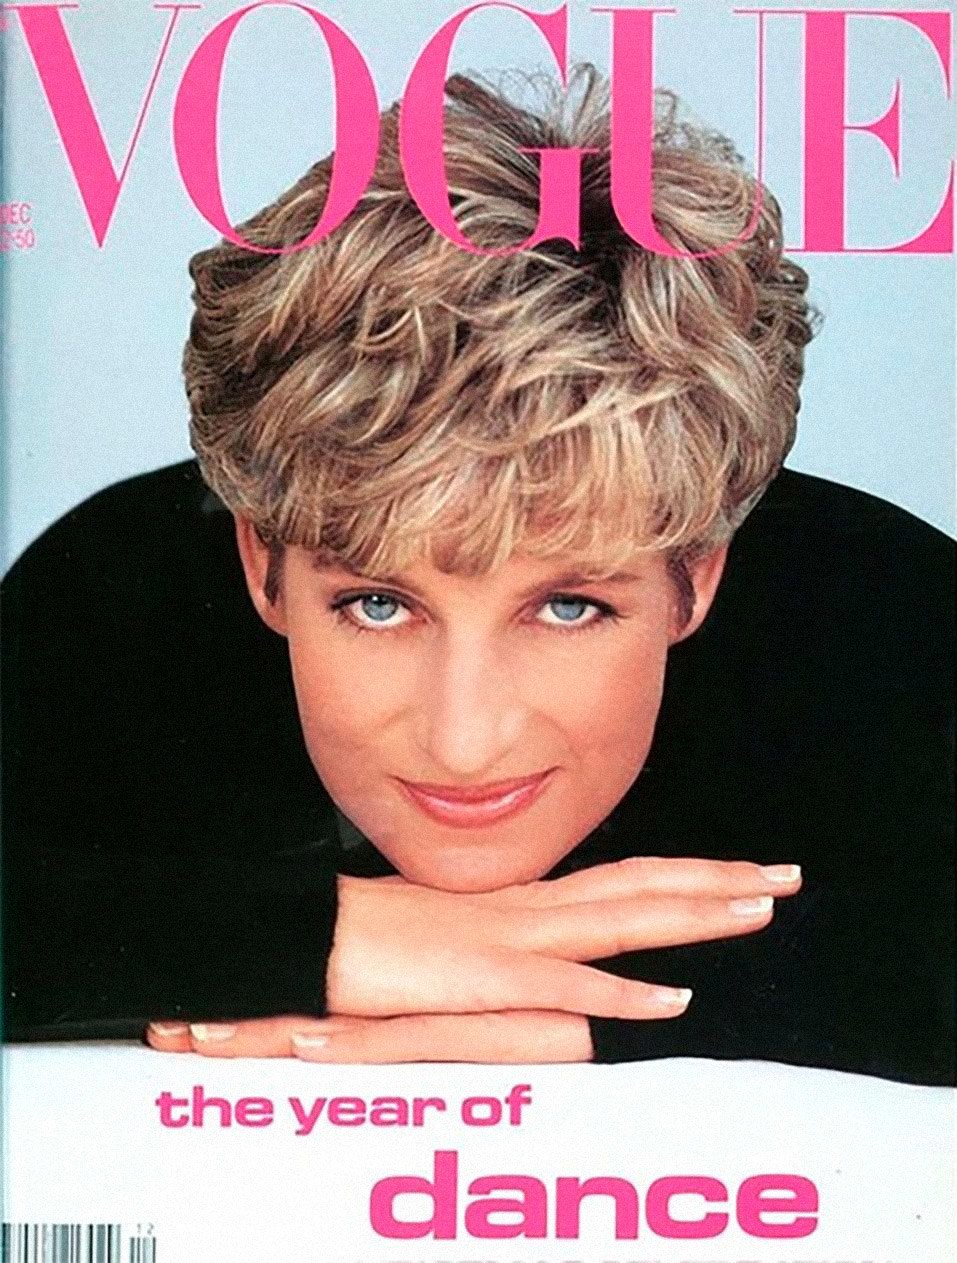 Princess Diana's famous haircut on the cover of Vogue